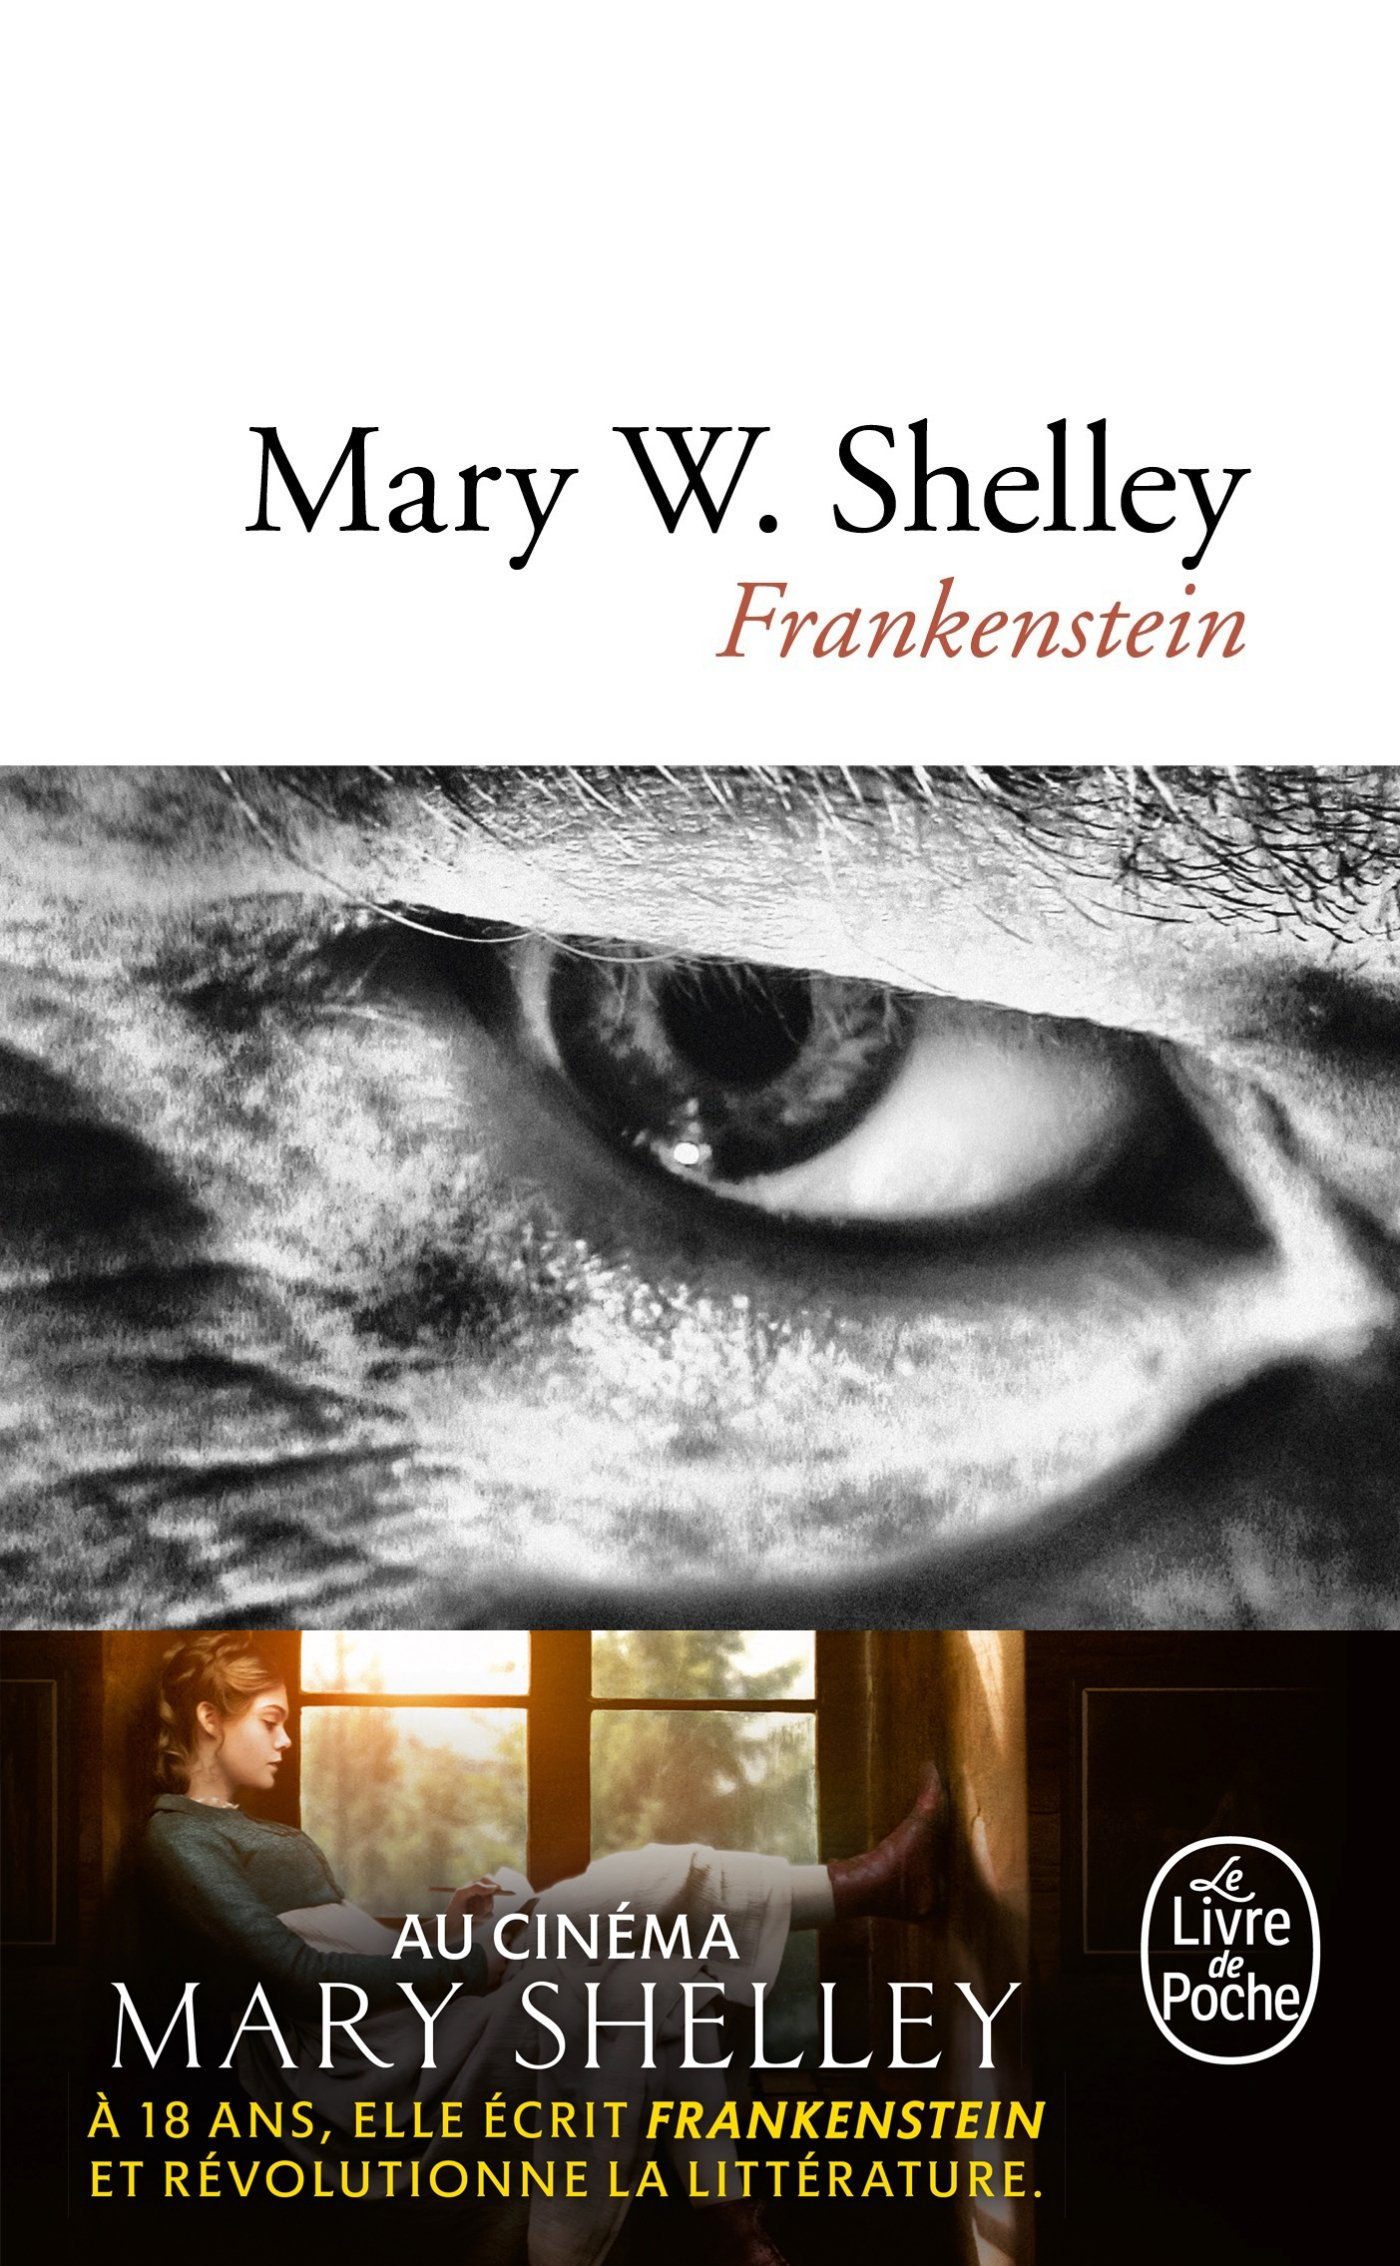 Frankenstein Poche – 21 octobre 2009 Mary Wollstonecraft Shelley Le Livre de Poche 2253088757 Fantastique